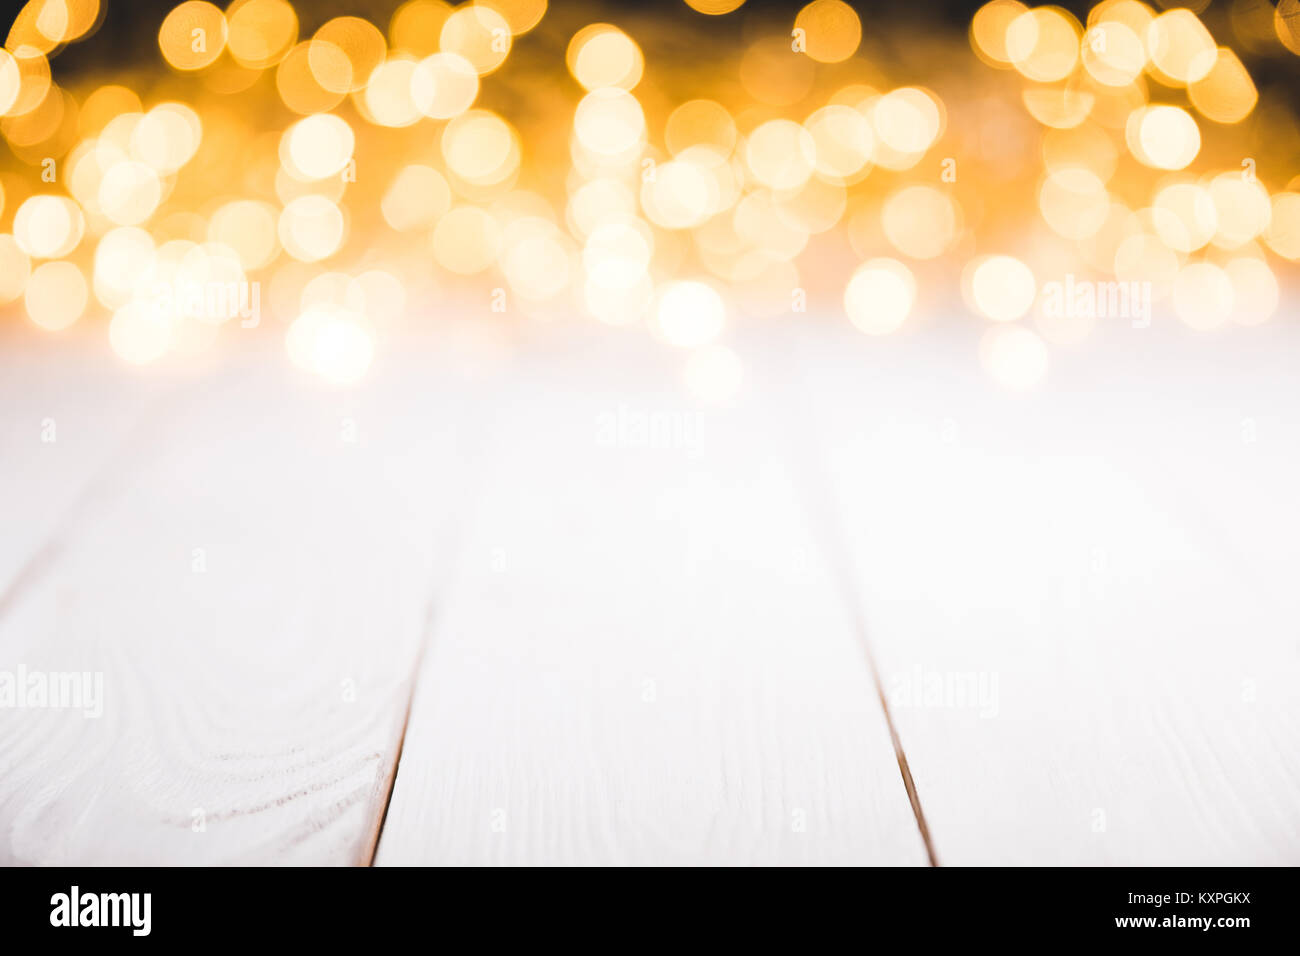 magical blurred lights on white wooden surface, christmas texture - Stock Image